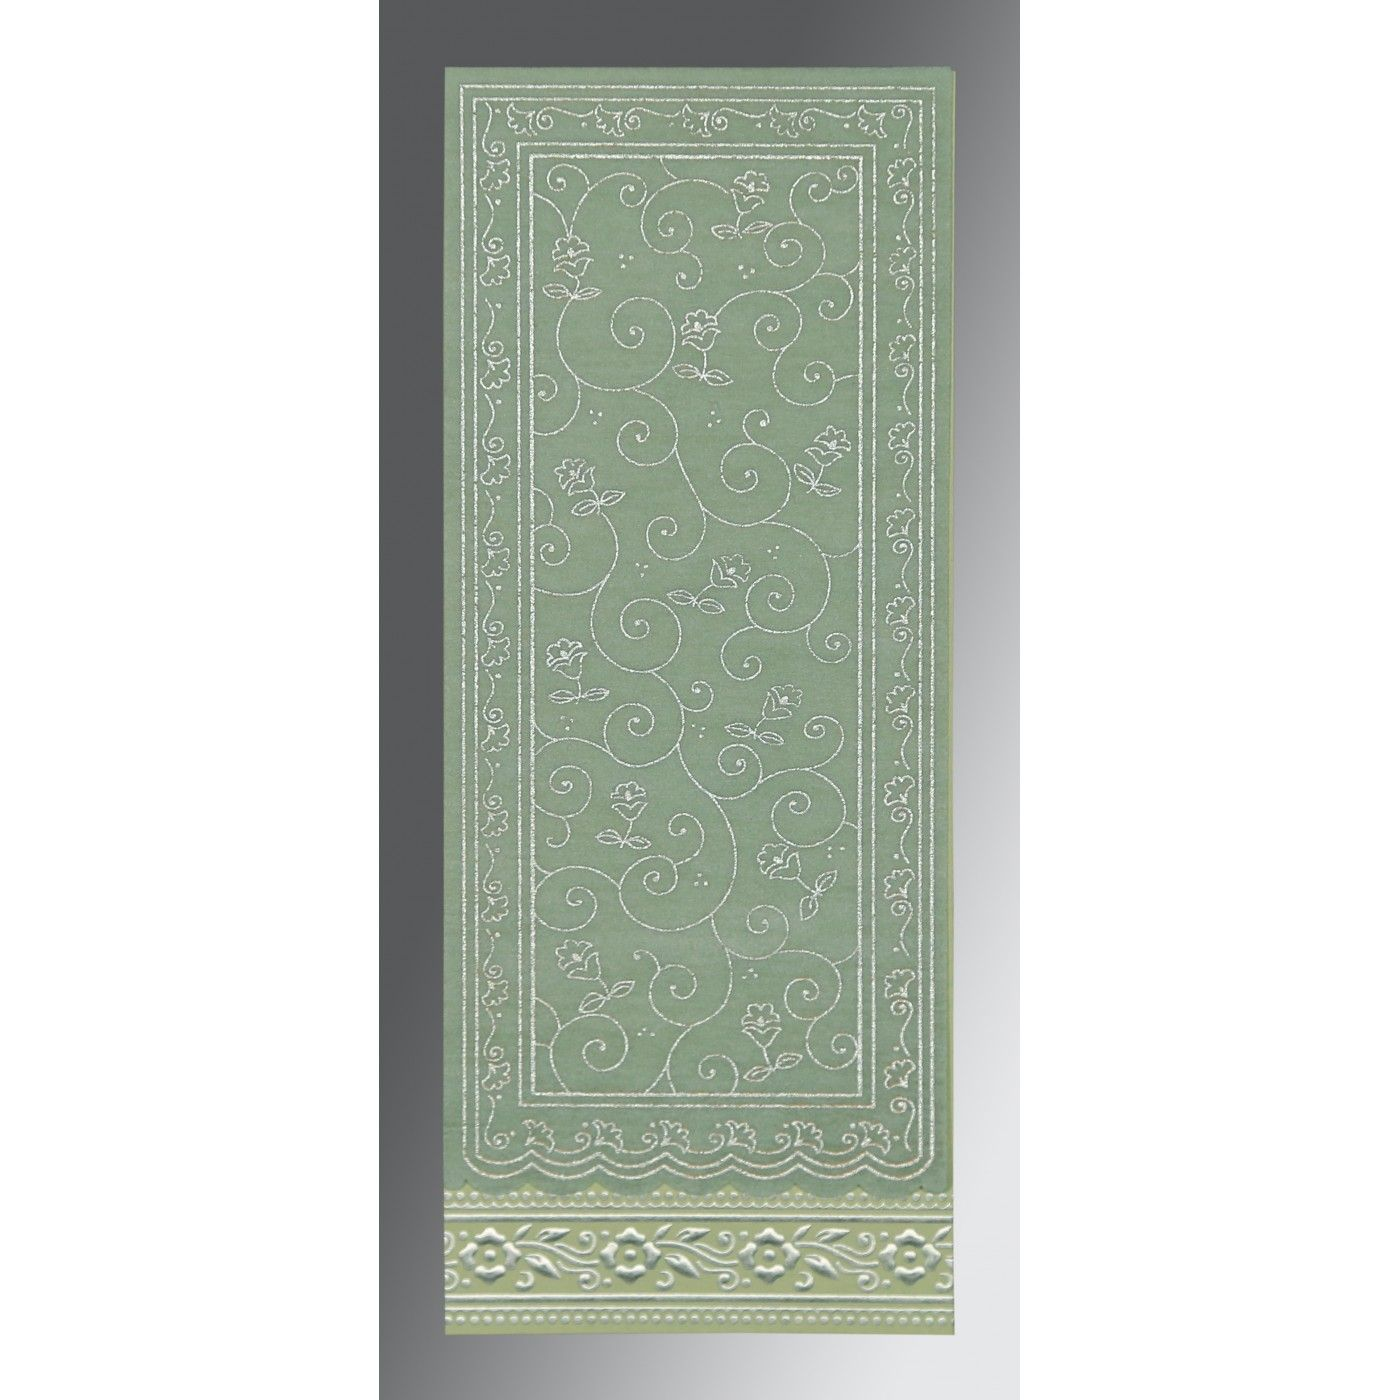 SAGE GREEN WOOLY SCREEN PRINTED WEDDING INVITATION : CW-8220G - IndianWeddingCards